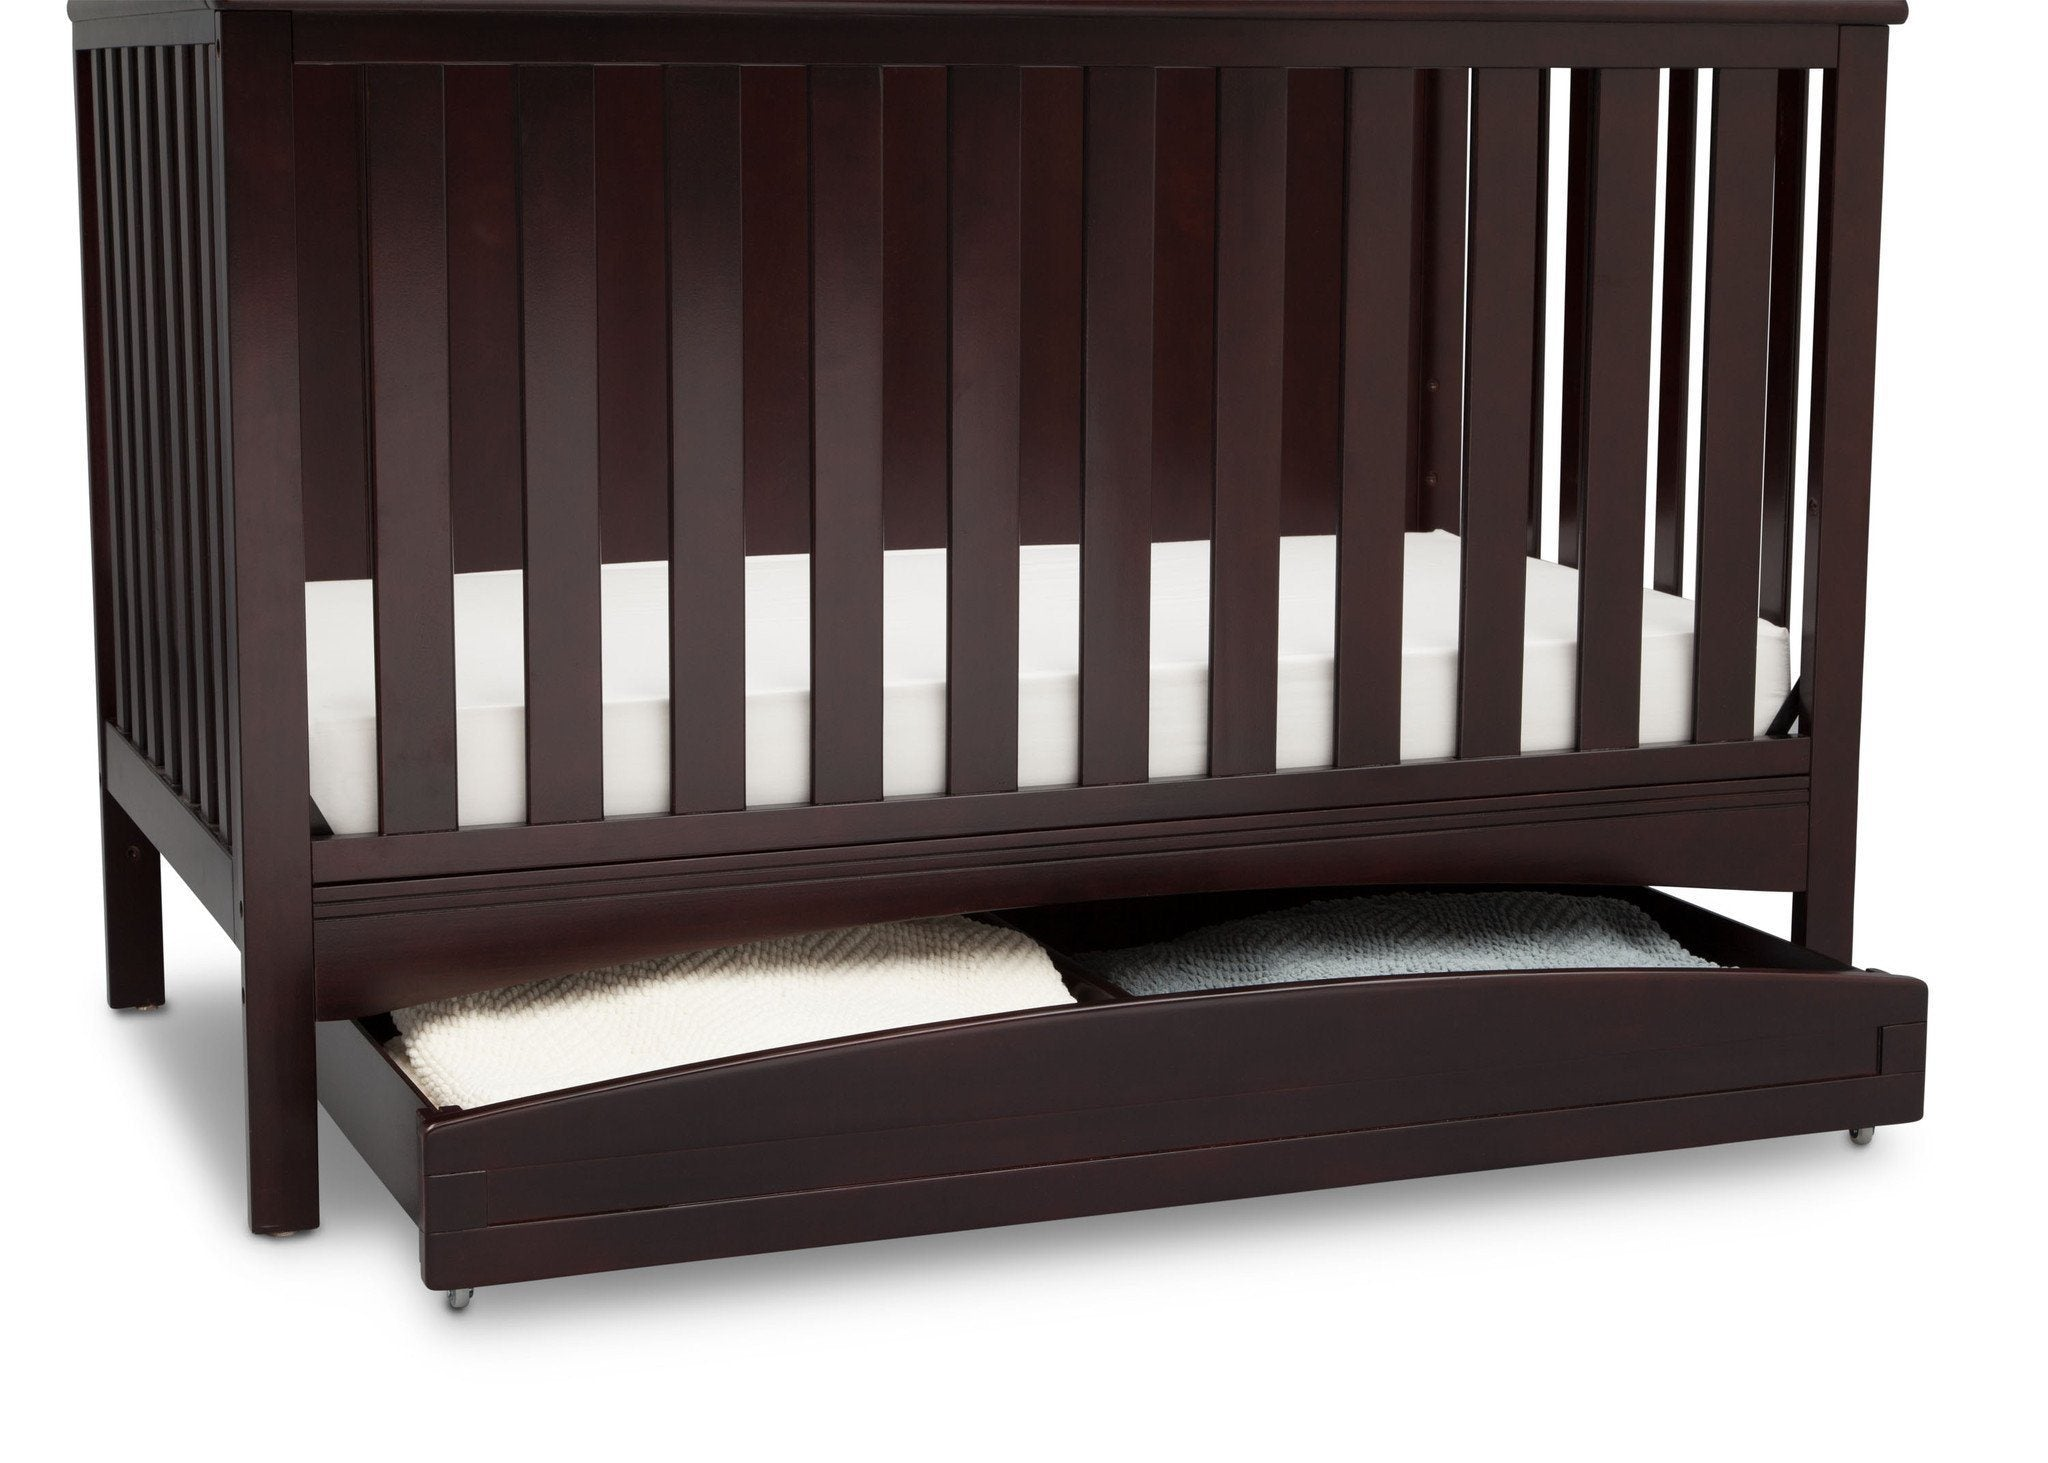 Delta Children Dark Chocolate (207) Delta Arch Trundle under Crib with Props c2c